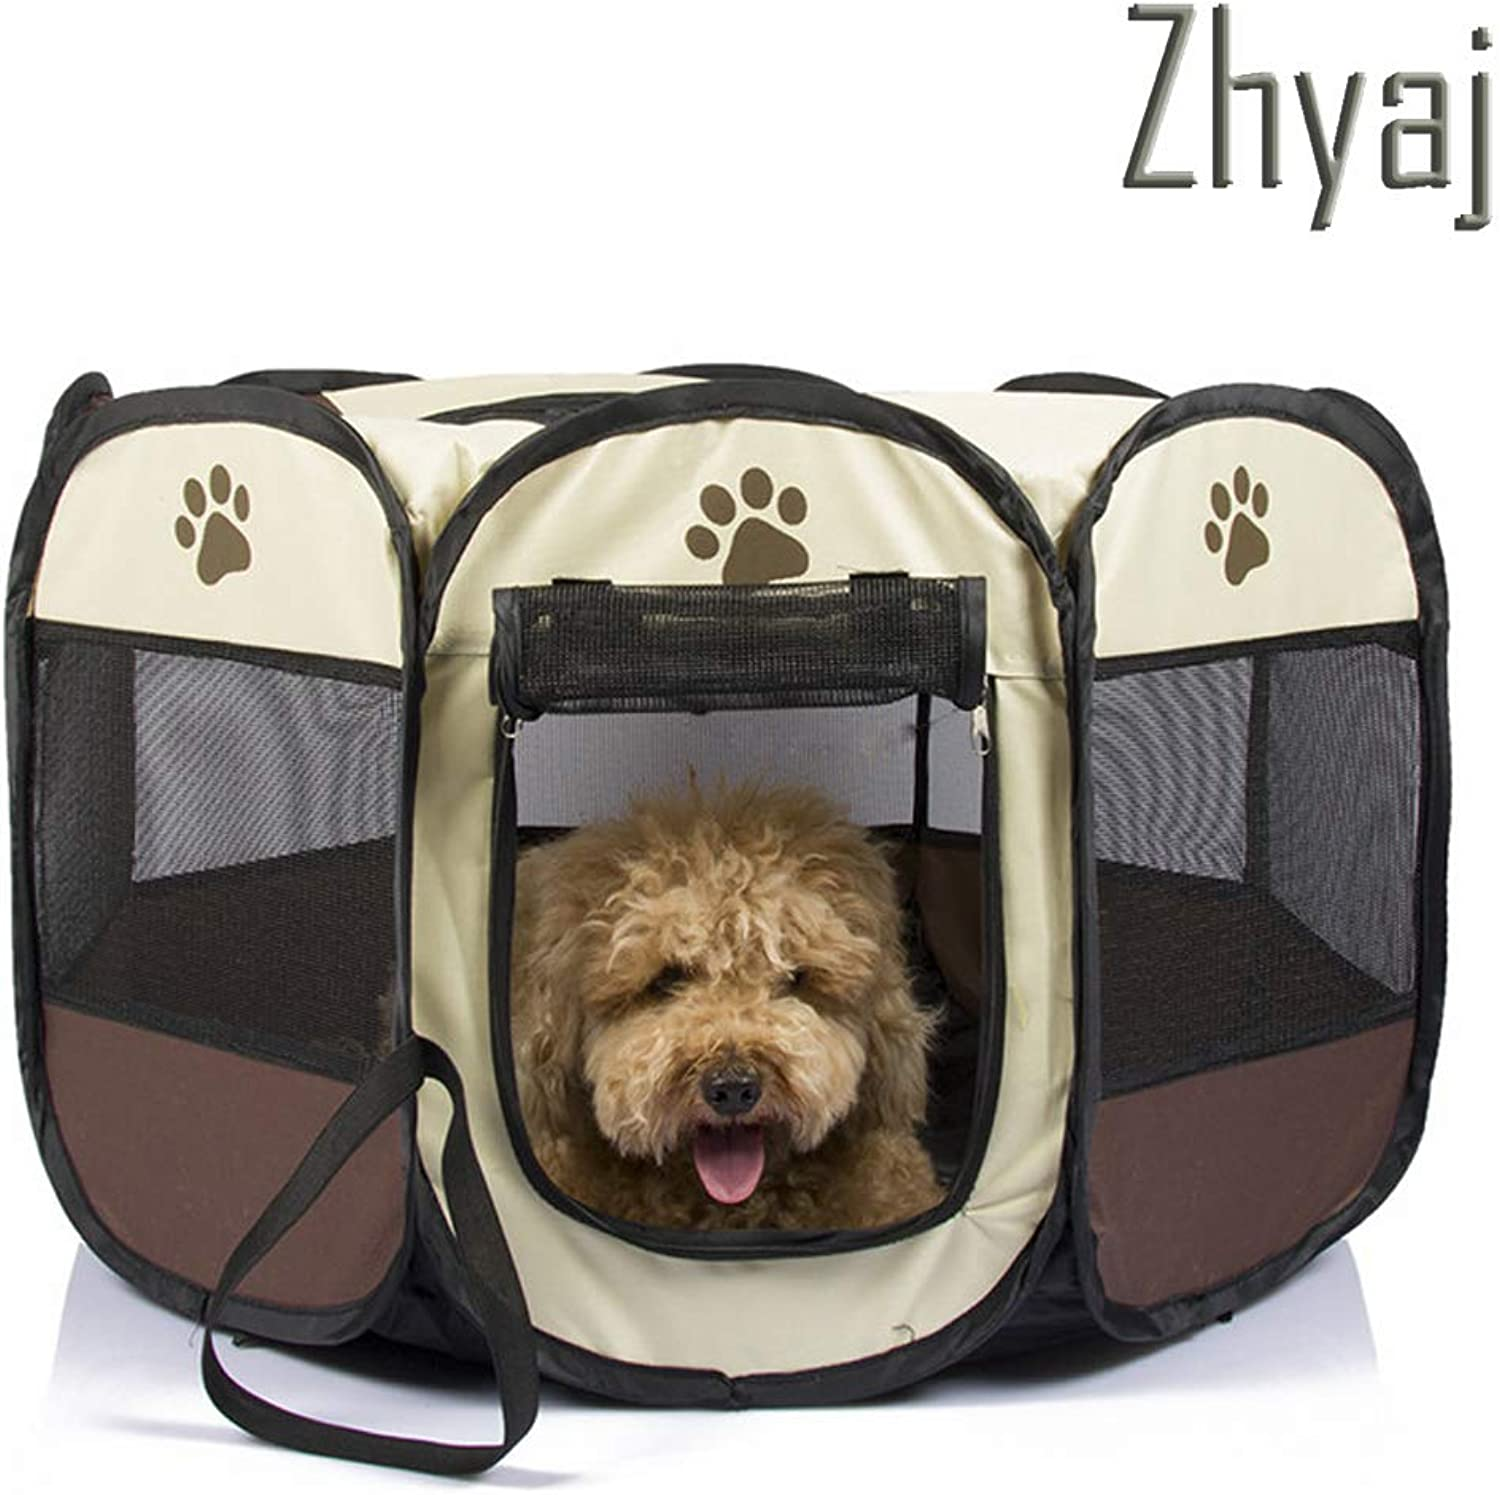 Dog Kennel Outdoor, Foldable Breathable WaterProof AntiMosquito Cat House Dog Bed Travel Basket Cage Playpen Guinea Pig Cage Large Dog Kennel,A